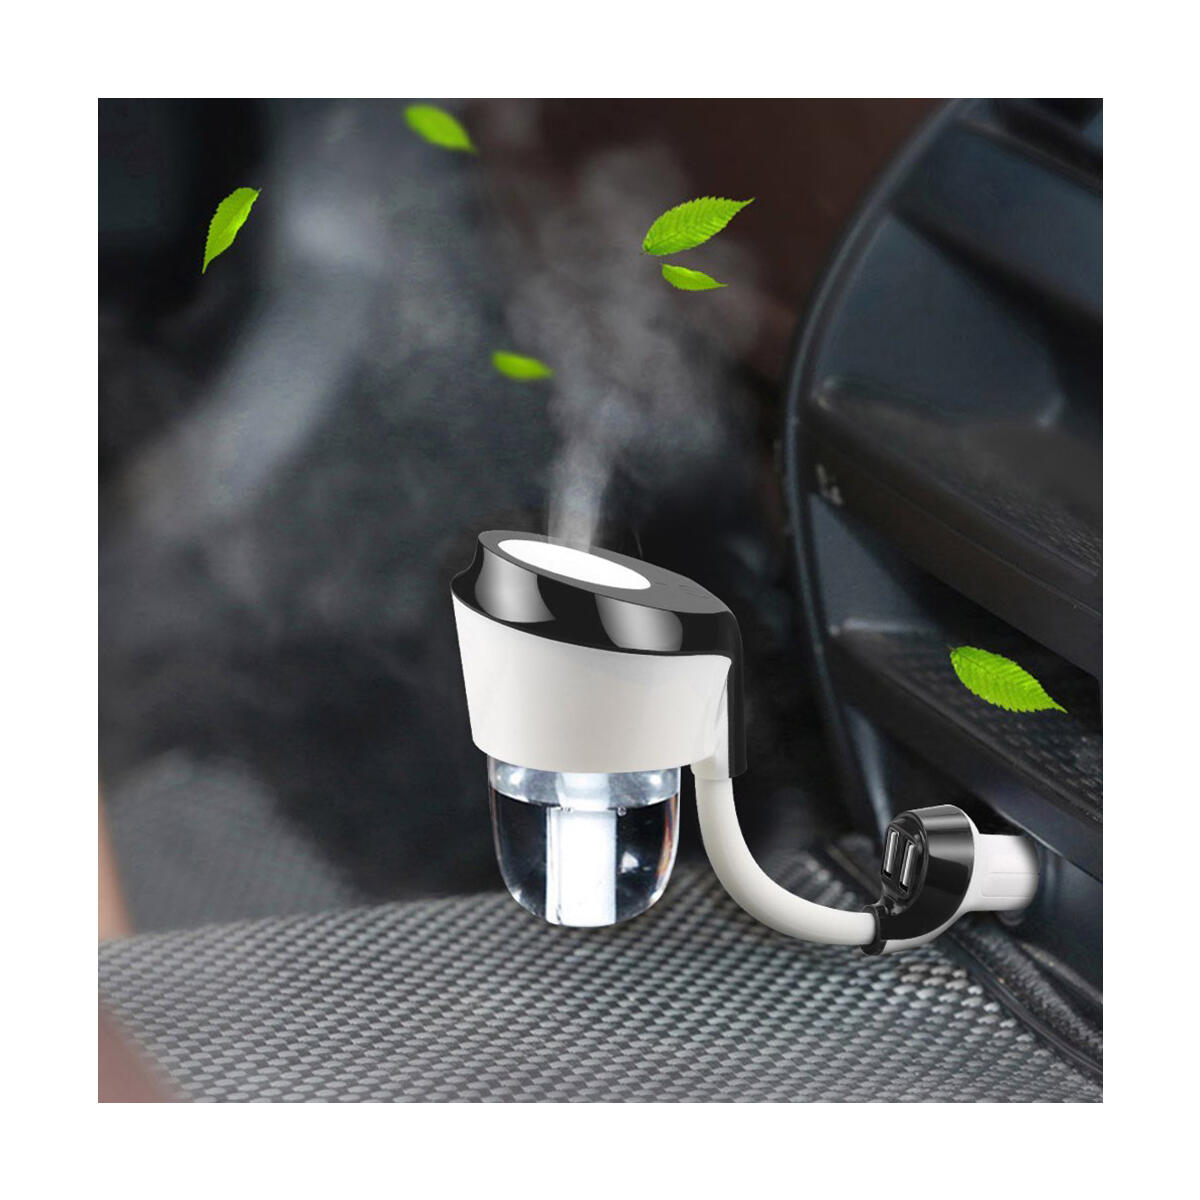 Car Diffuser Humidifier, Essential Oil Diffusers with Dual USB Charger Adapter(90265)